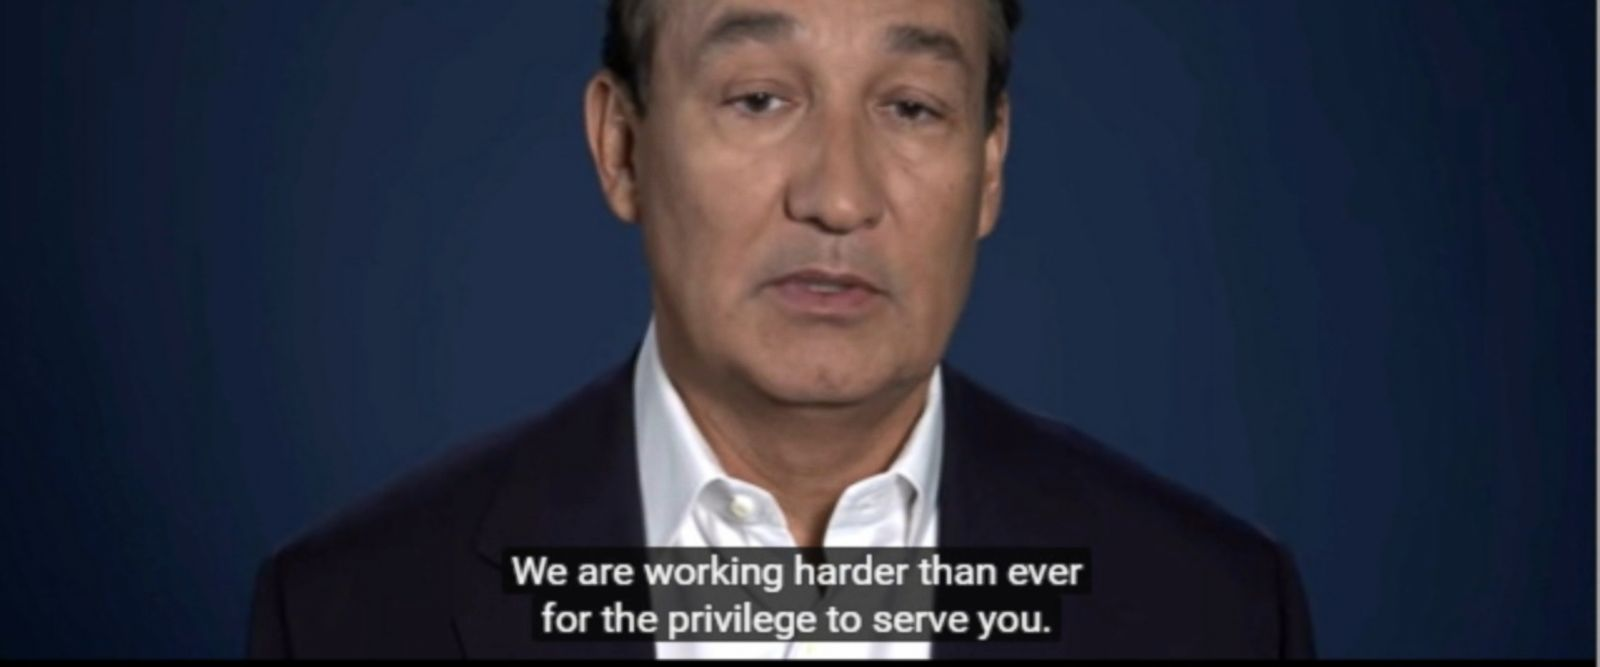 """This is just the beginning of how we earn back your trust,"" Oscar Munoz, CEO of United Airlines, said in a video apology. ""It's all about putting our customers at the center of what we do."